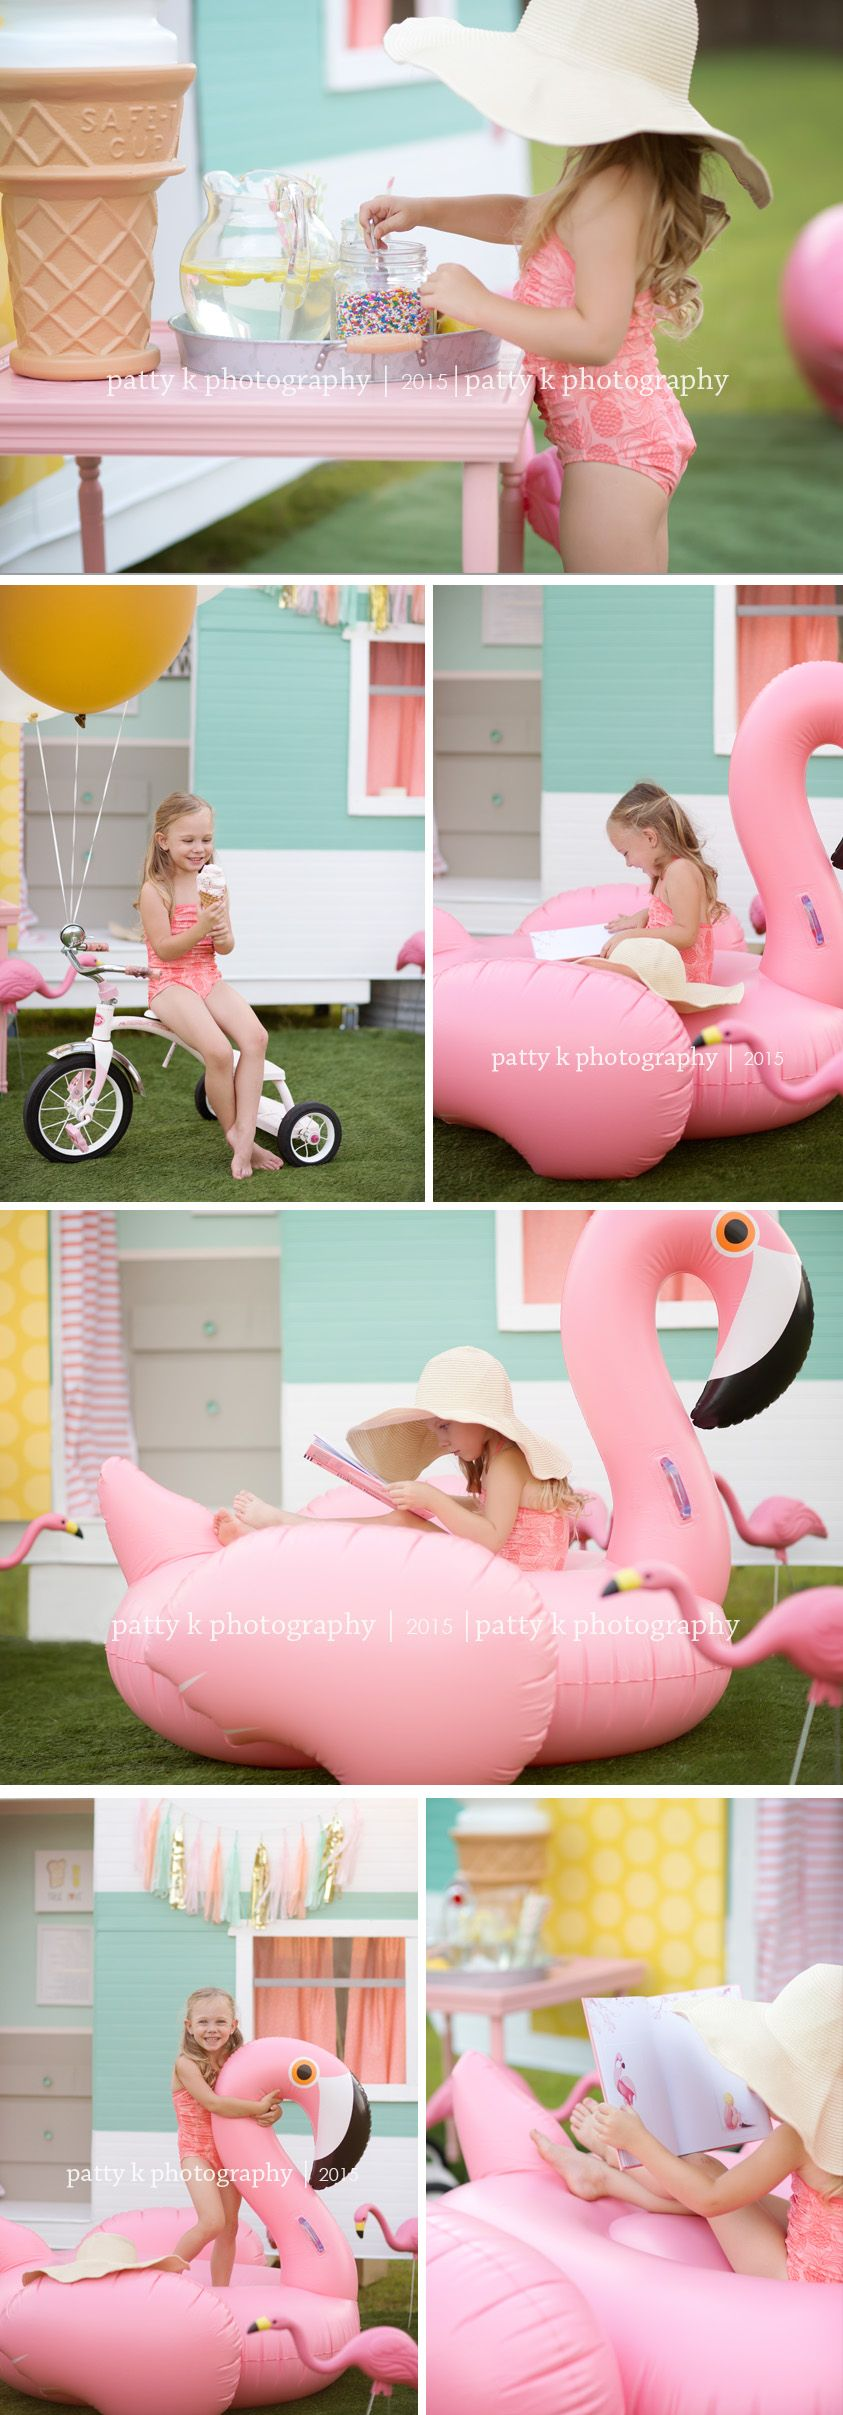 Flamingos And Sprinkles Imagination Session Fayetteville Nc Photographer Children Photography Photography Mini Sessions Baby Photography